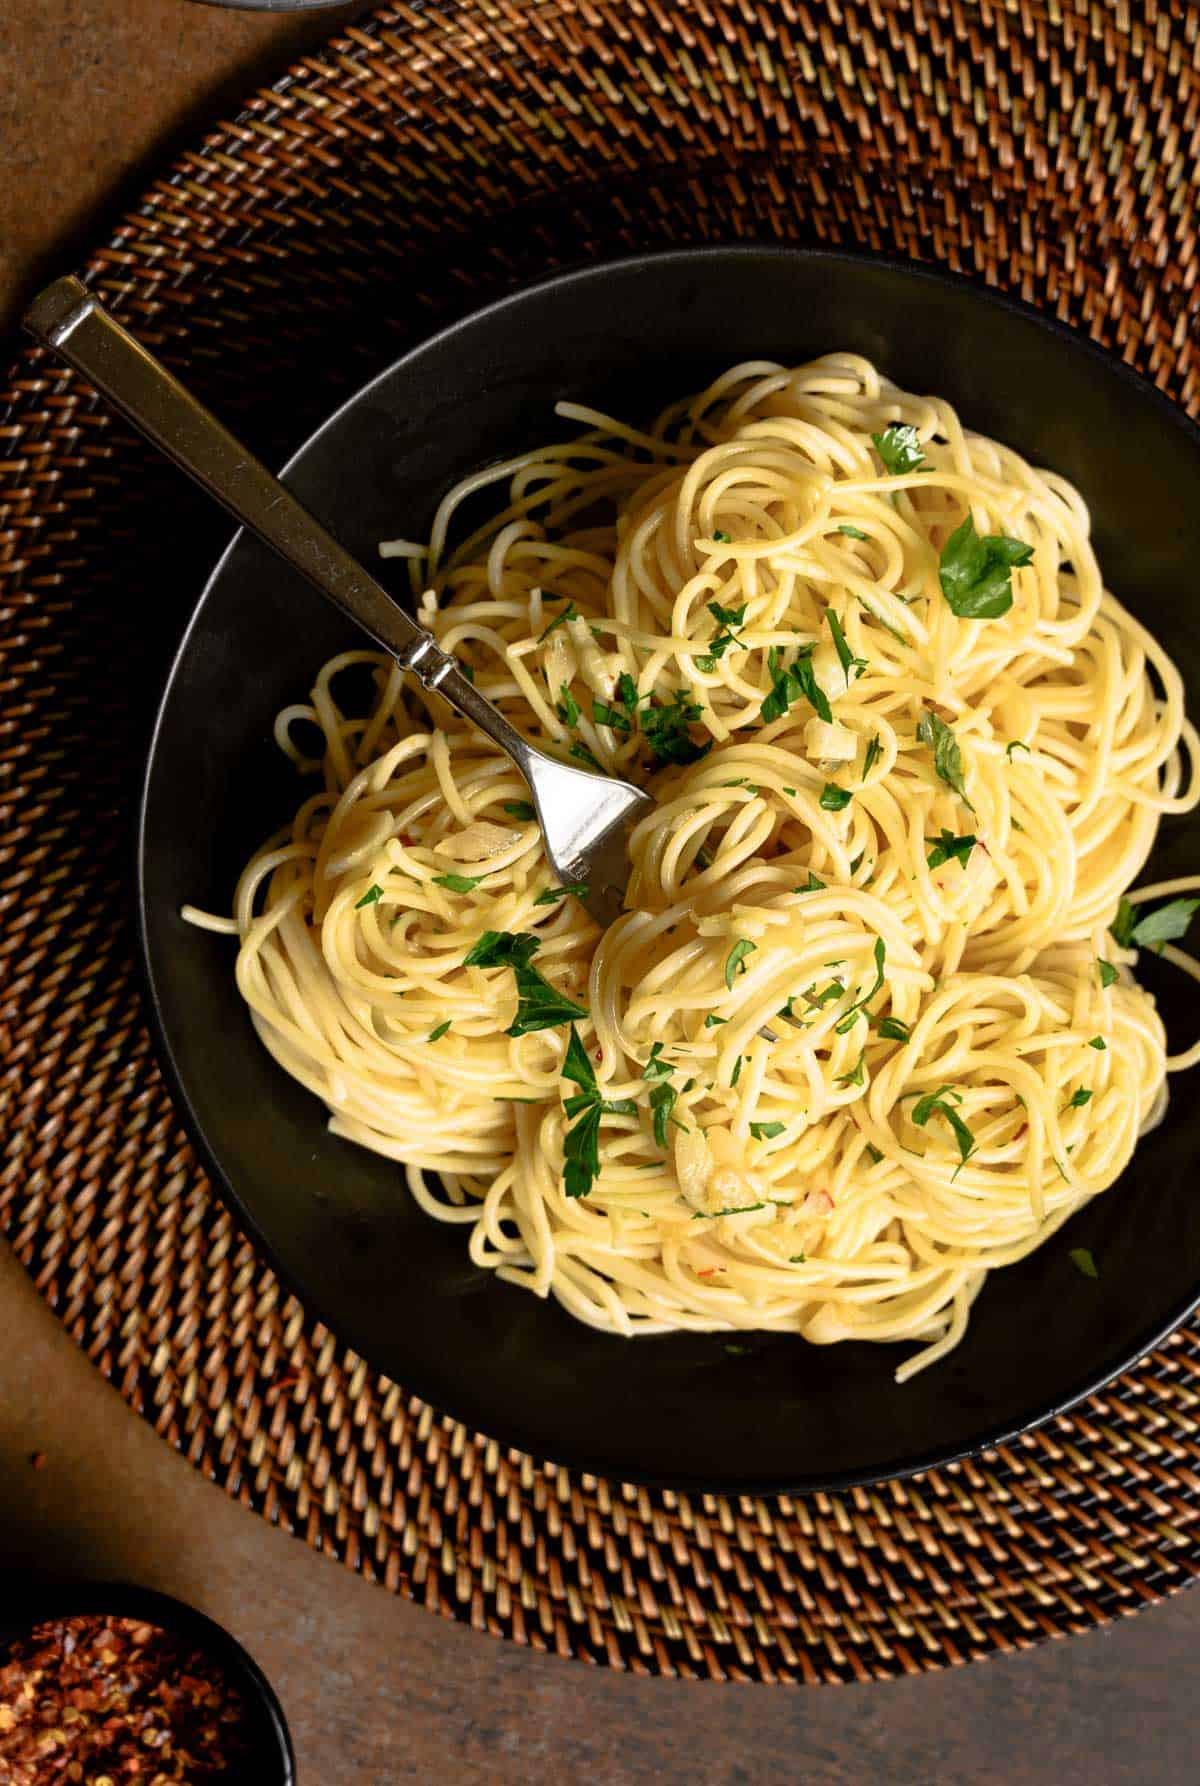 black plate of spaghetti and parsley on a rattan charger.